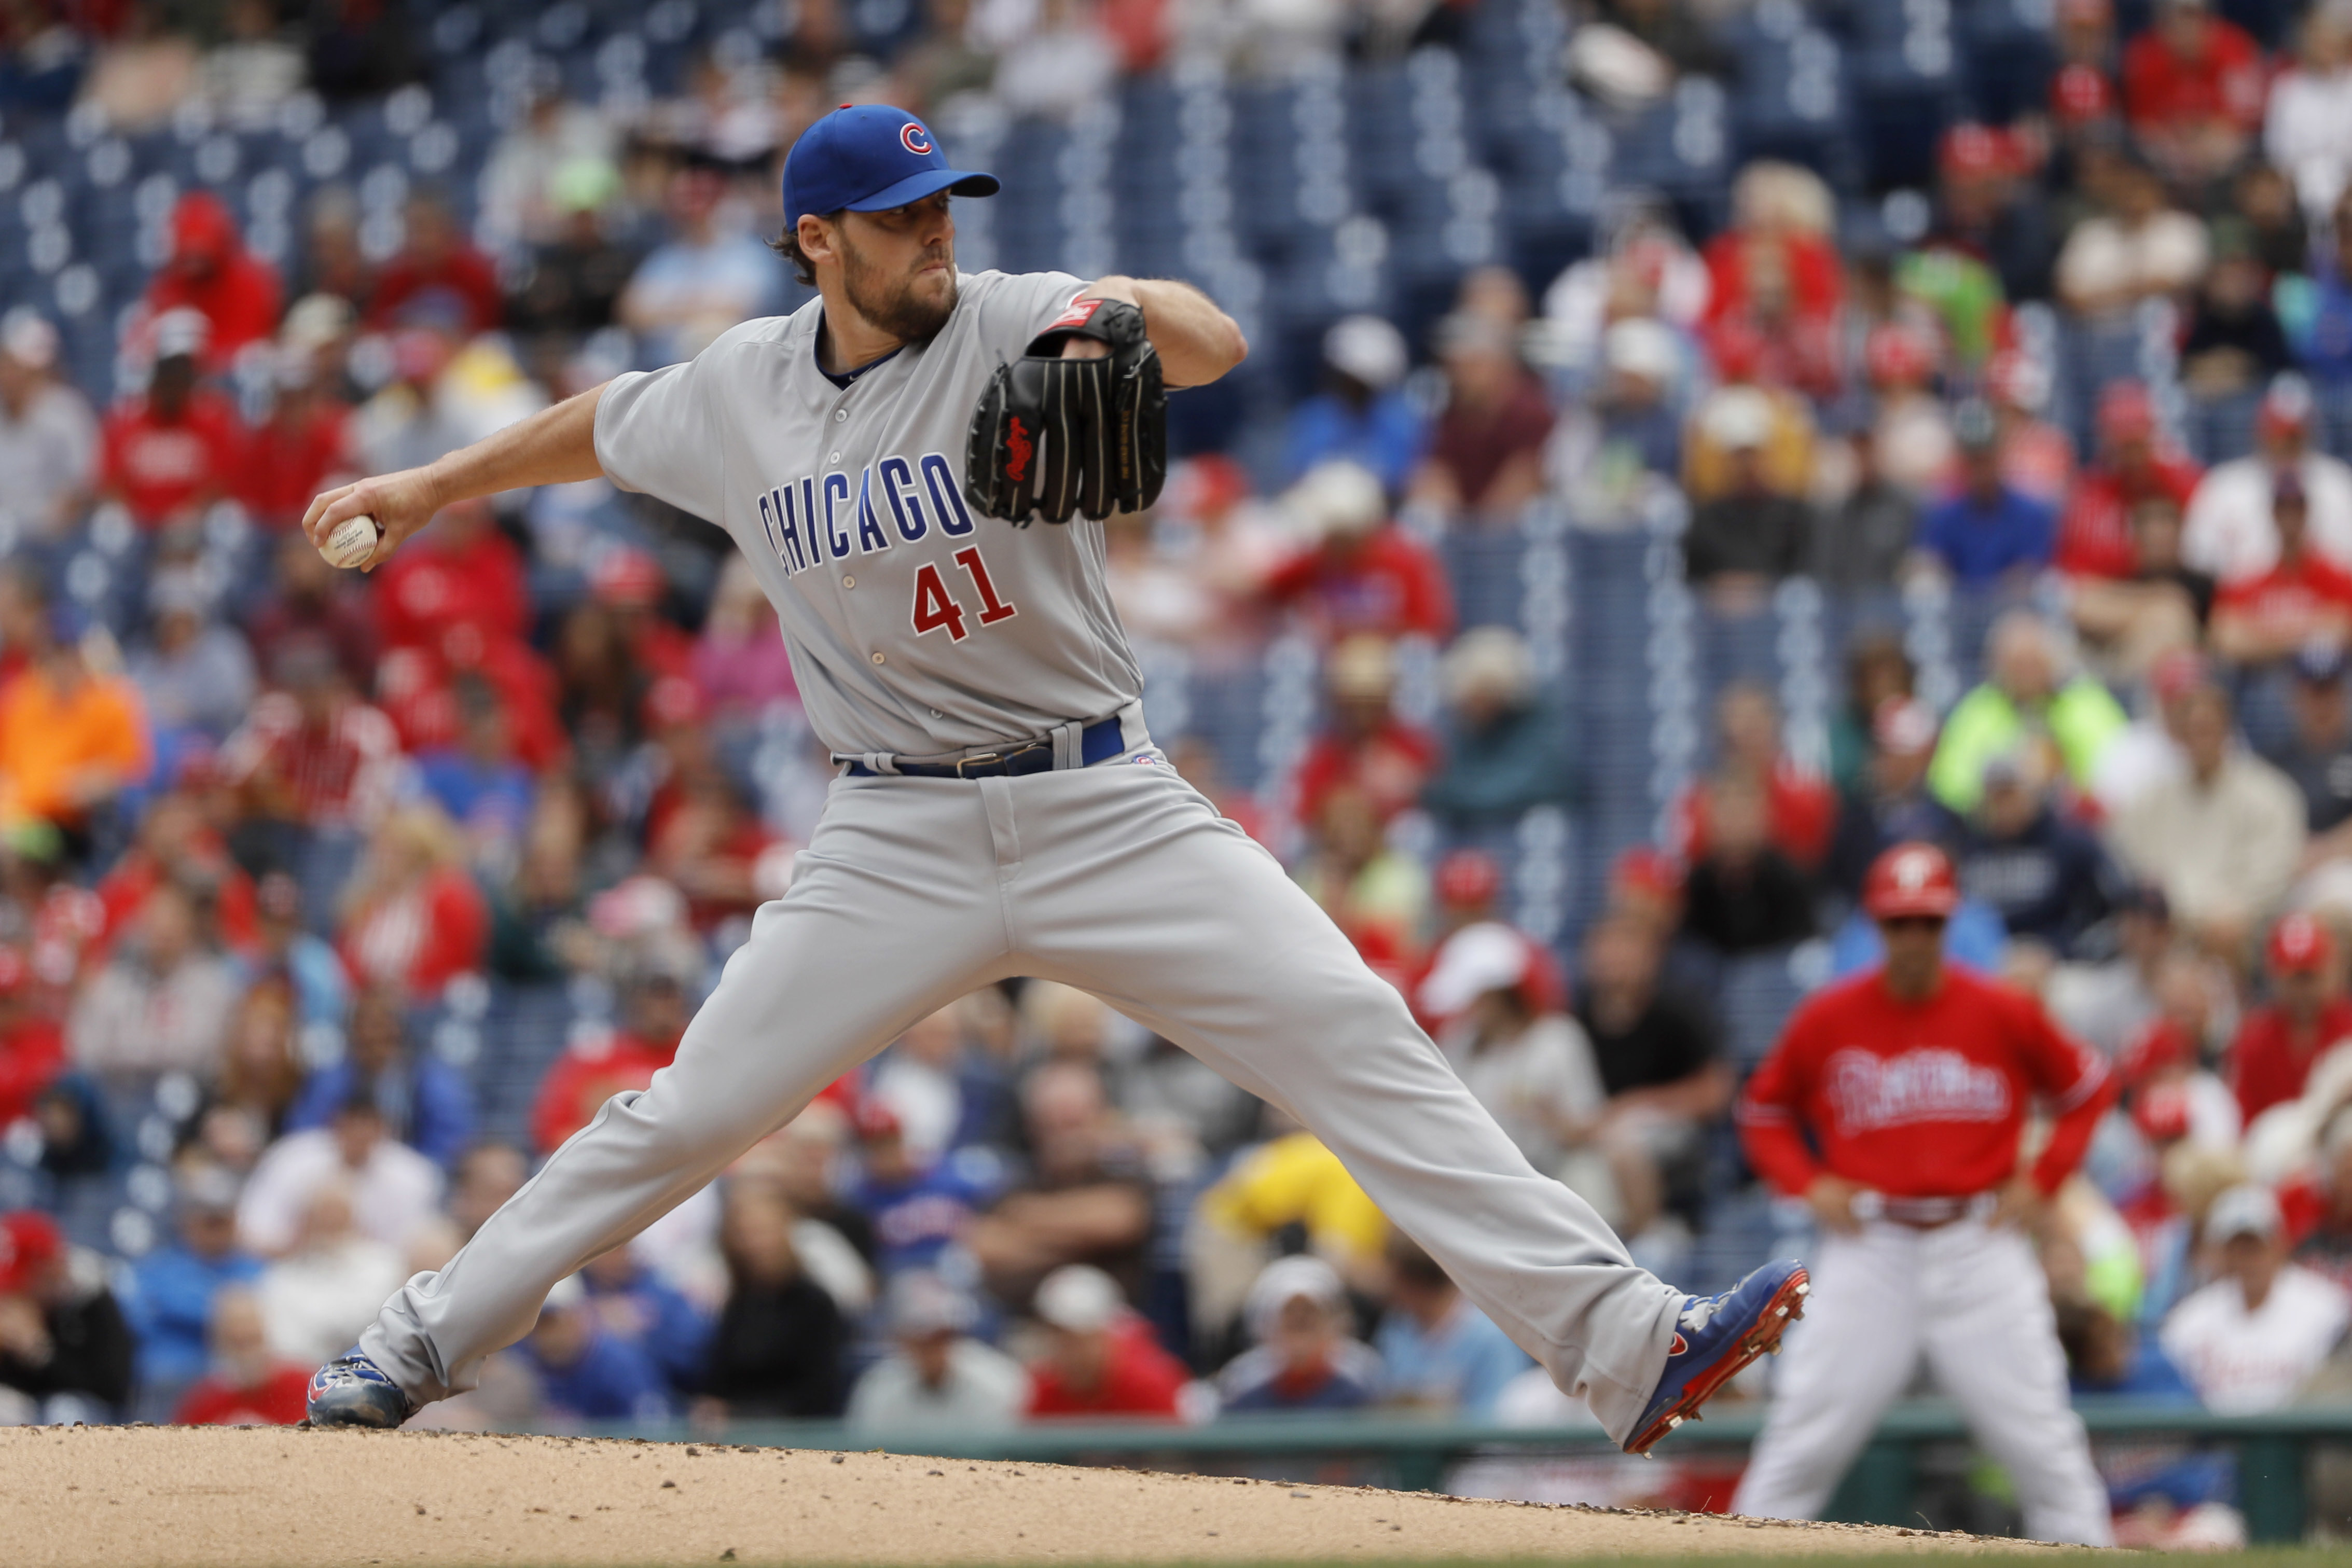 Chicago Cubs' John Lackey pitches during the first inning of a baseball game against the Philadelphia Phillies, Wednesday, June 8, 2016, in Philadelphia. (AP Photo/Matt Slocum)